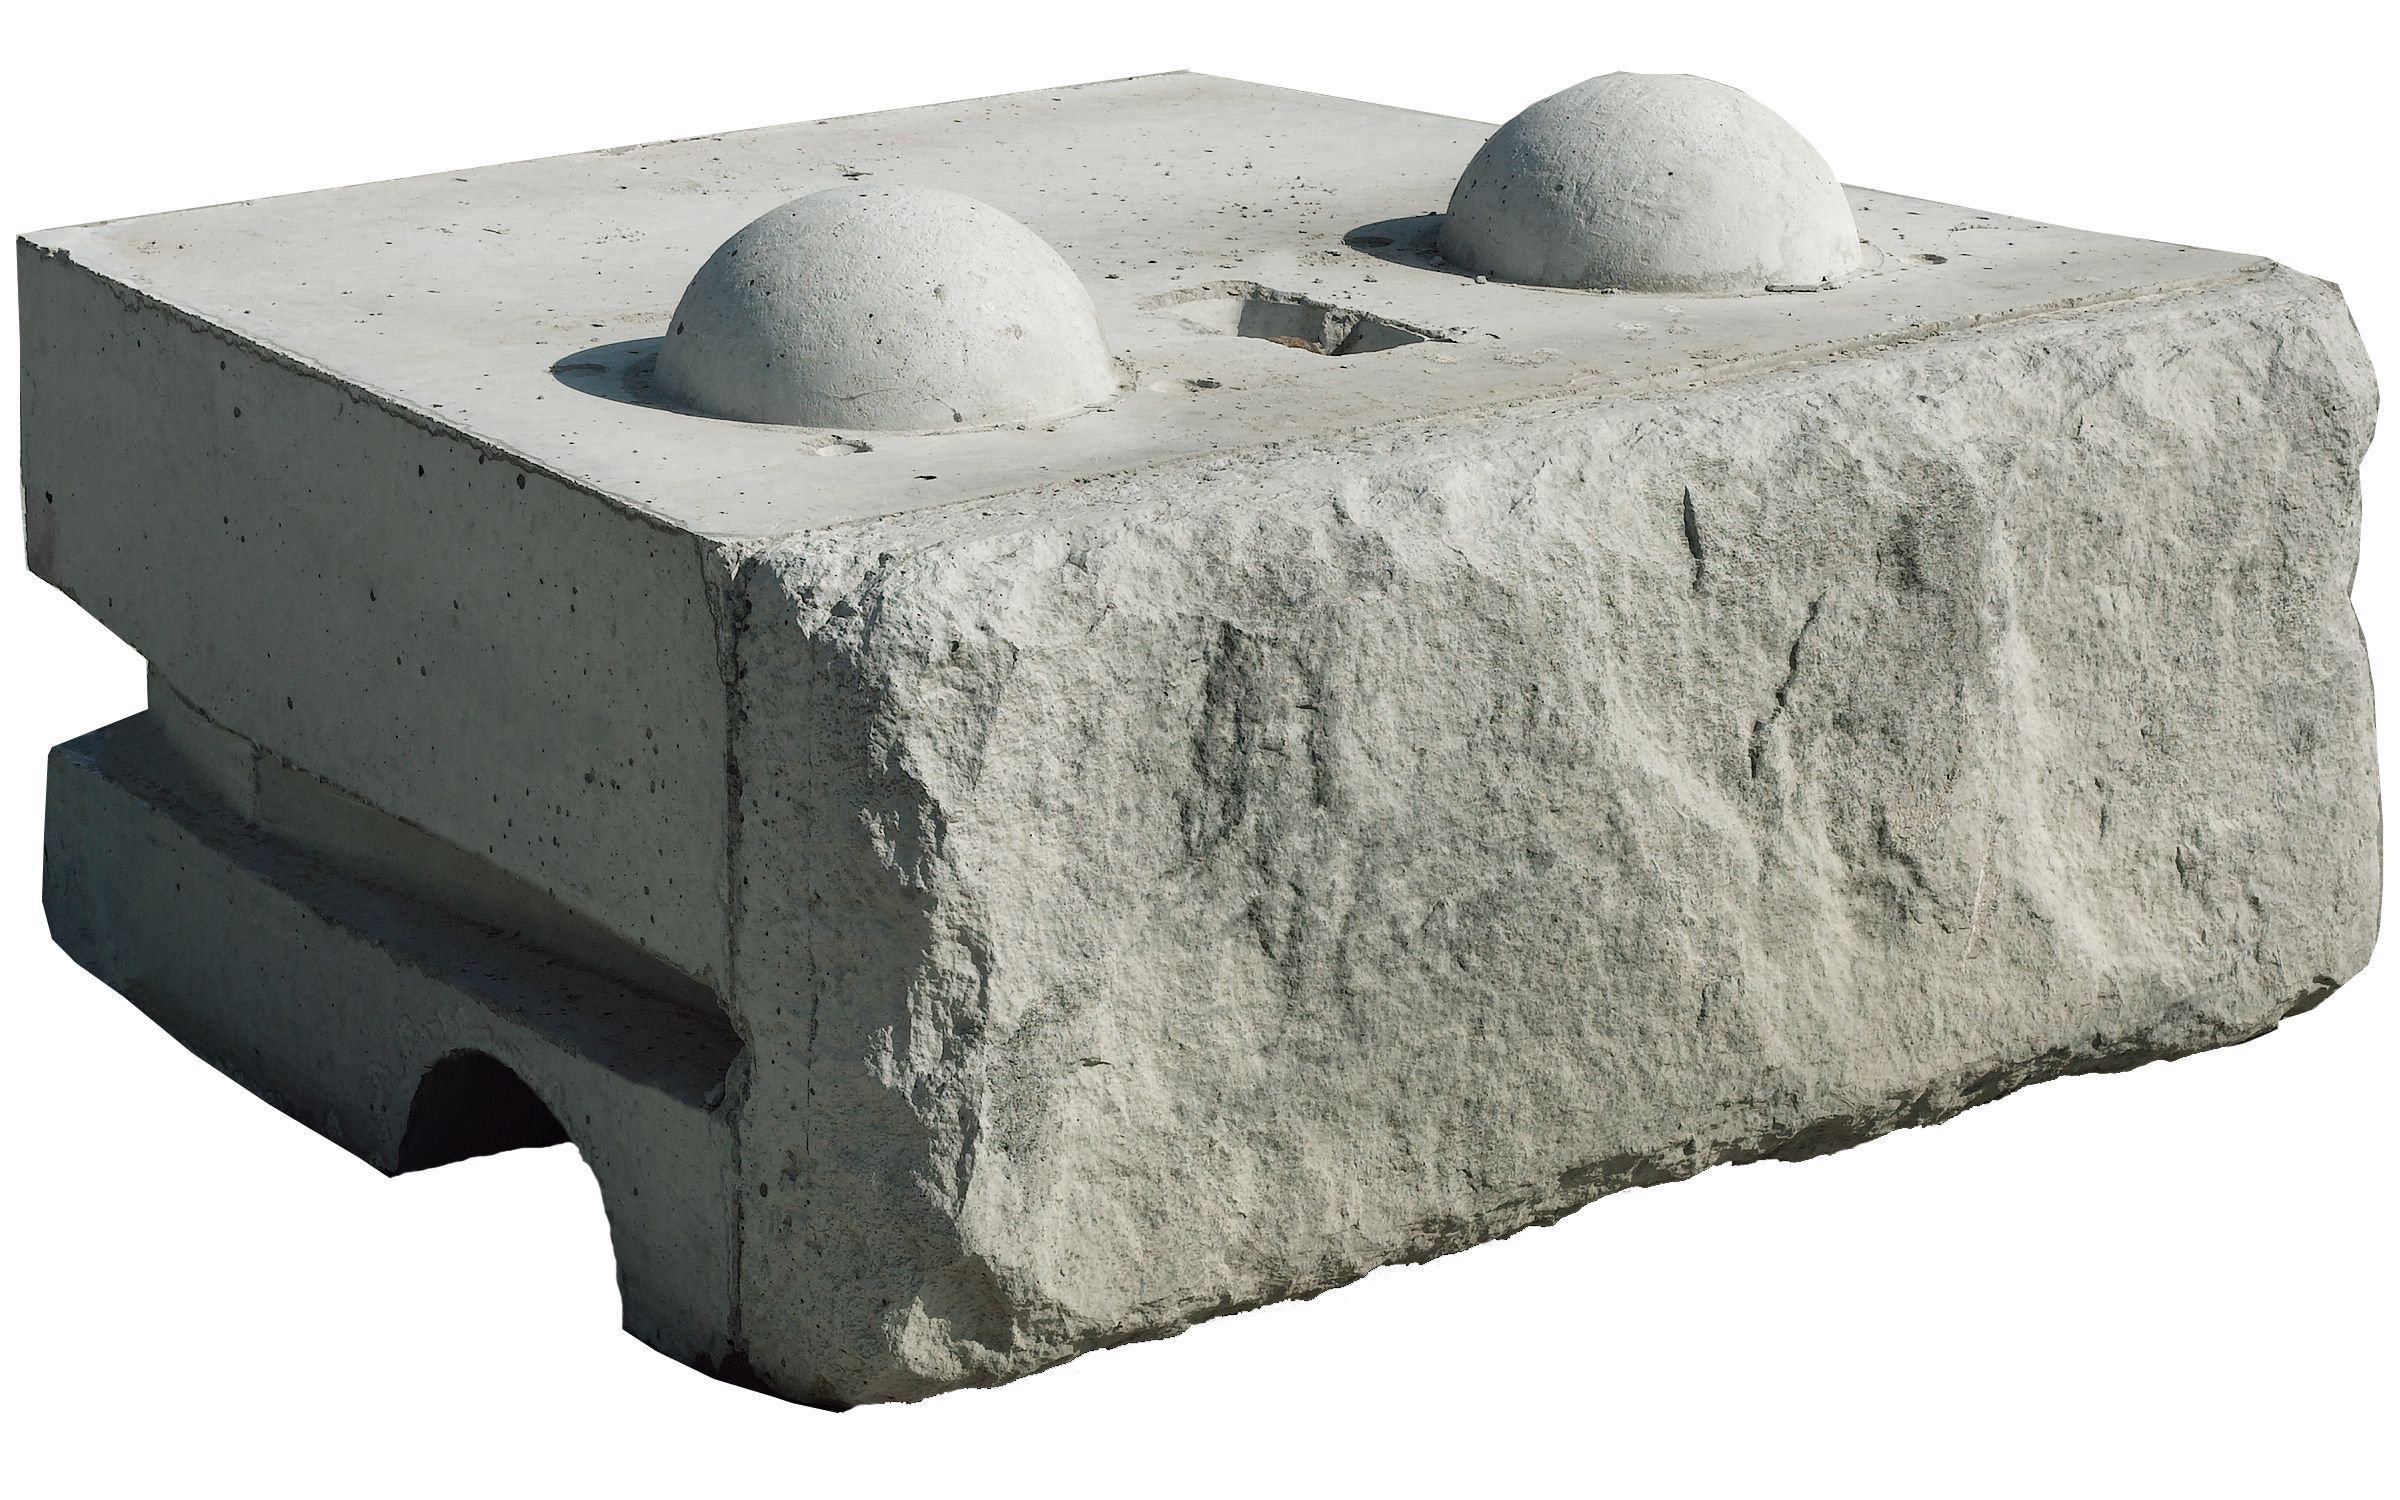 Cpm Is The Only Licensed Manufacturer Of Redi Rock Concrete Blocks Within The Uk Mainland And Has Full Bba Approval Concrete Blocks Retaining Wall Wall Systems